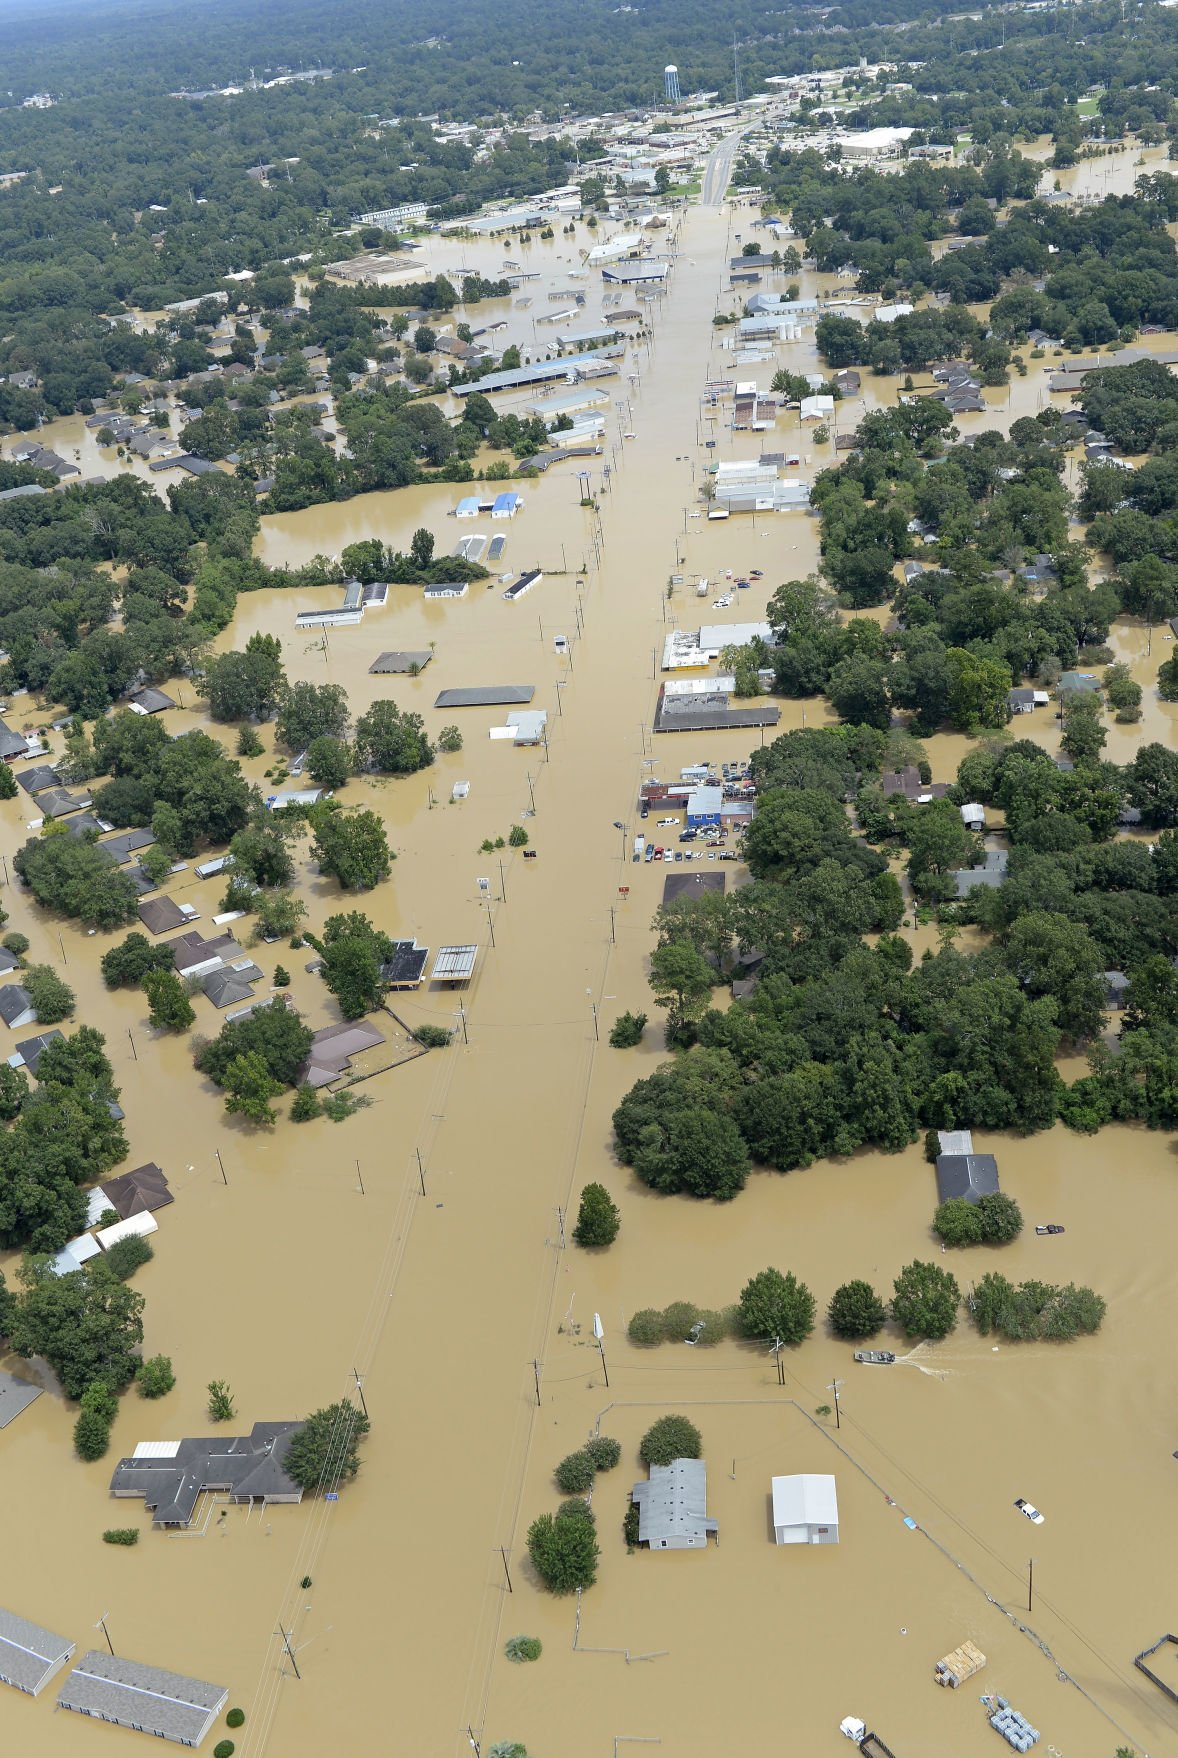 Fema Flood Insurance Quote Only 1 In 8 Ebr Residents Have Flood Insurance Meaning Many Will